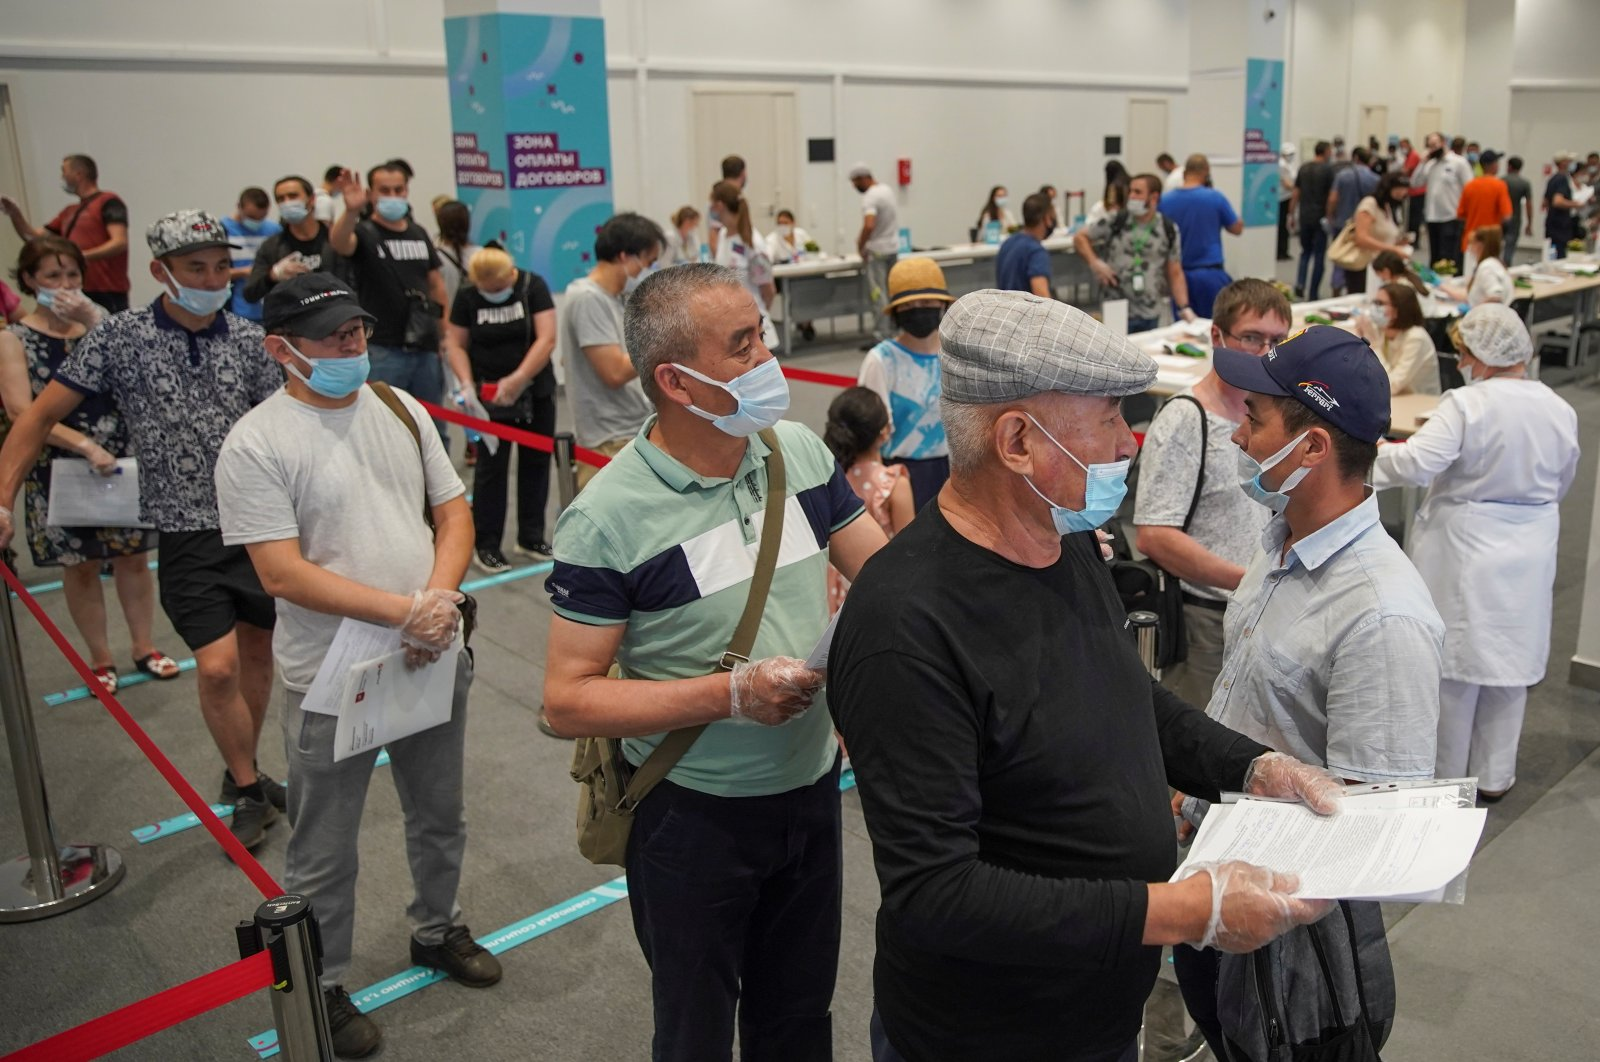 People wait to receive a vaccine against the coronavirus at a vaccination center in Luzhniki Stadium in Moscow, Russia July 8, 2021. (Reuters Photo)